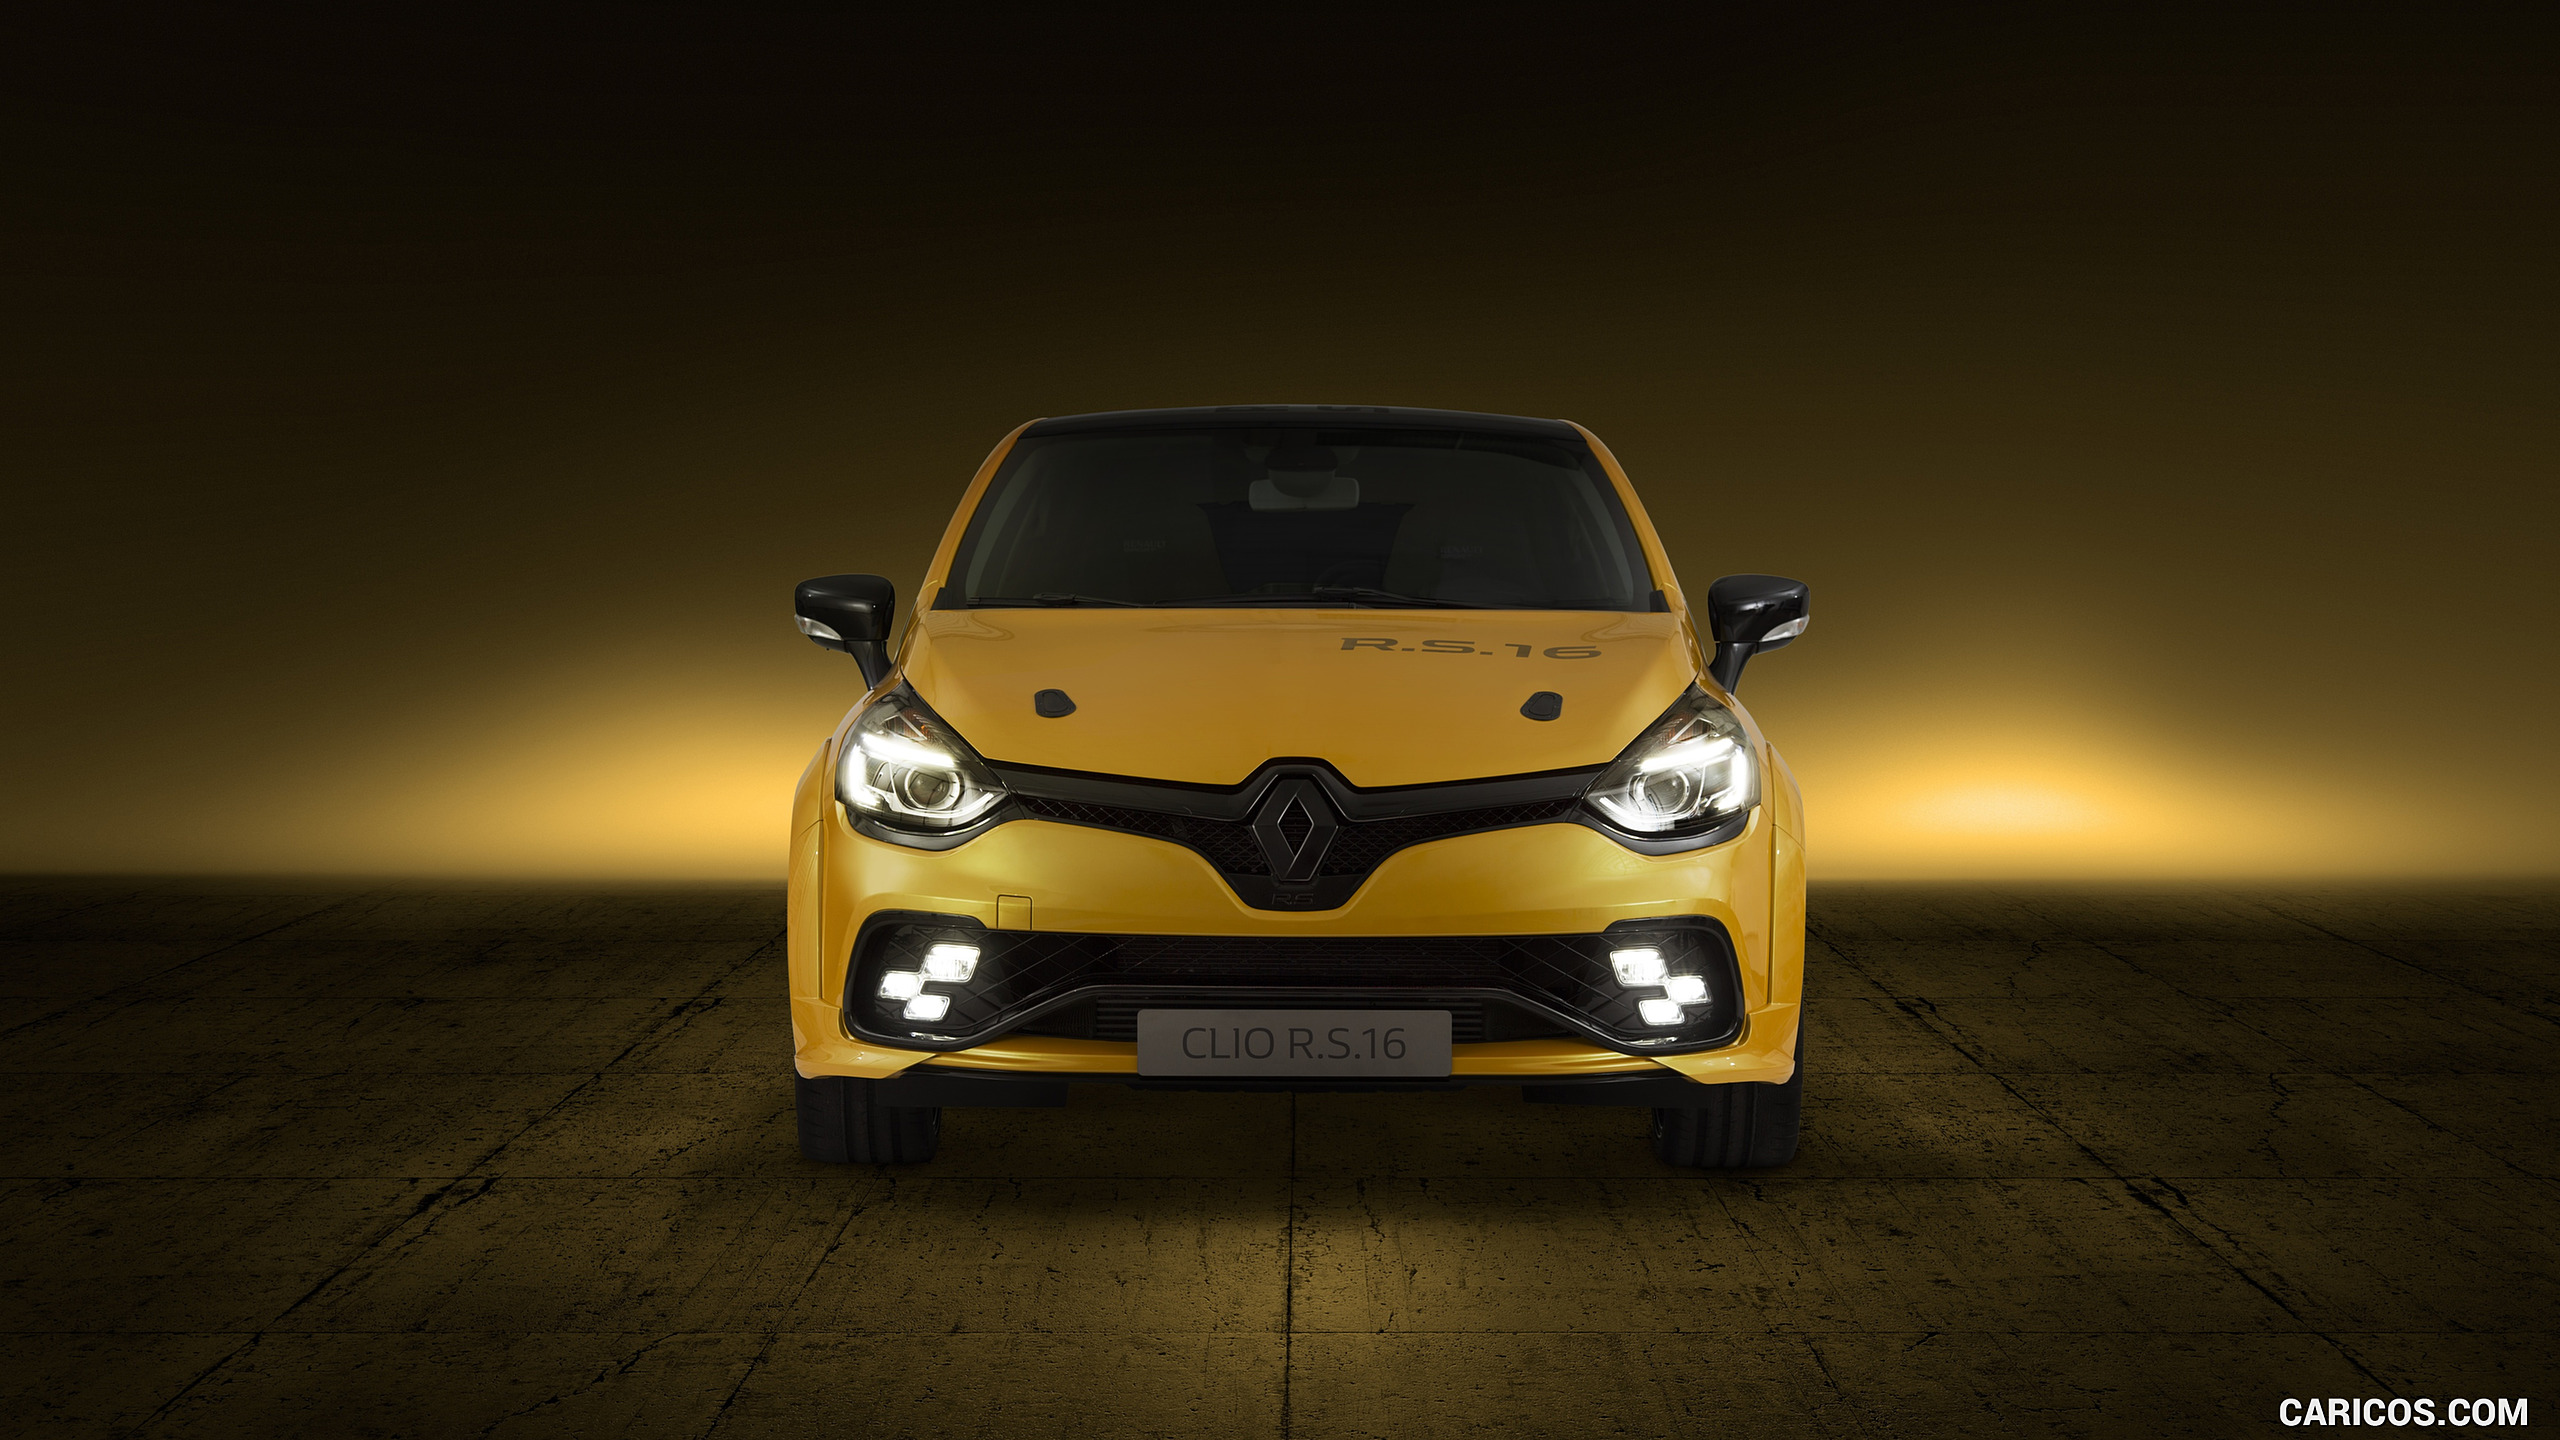 2560x1440 - Renault RS Wallpapers 37